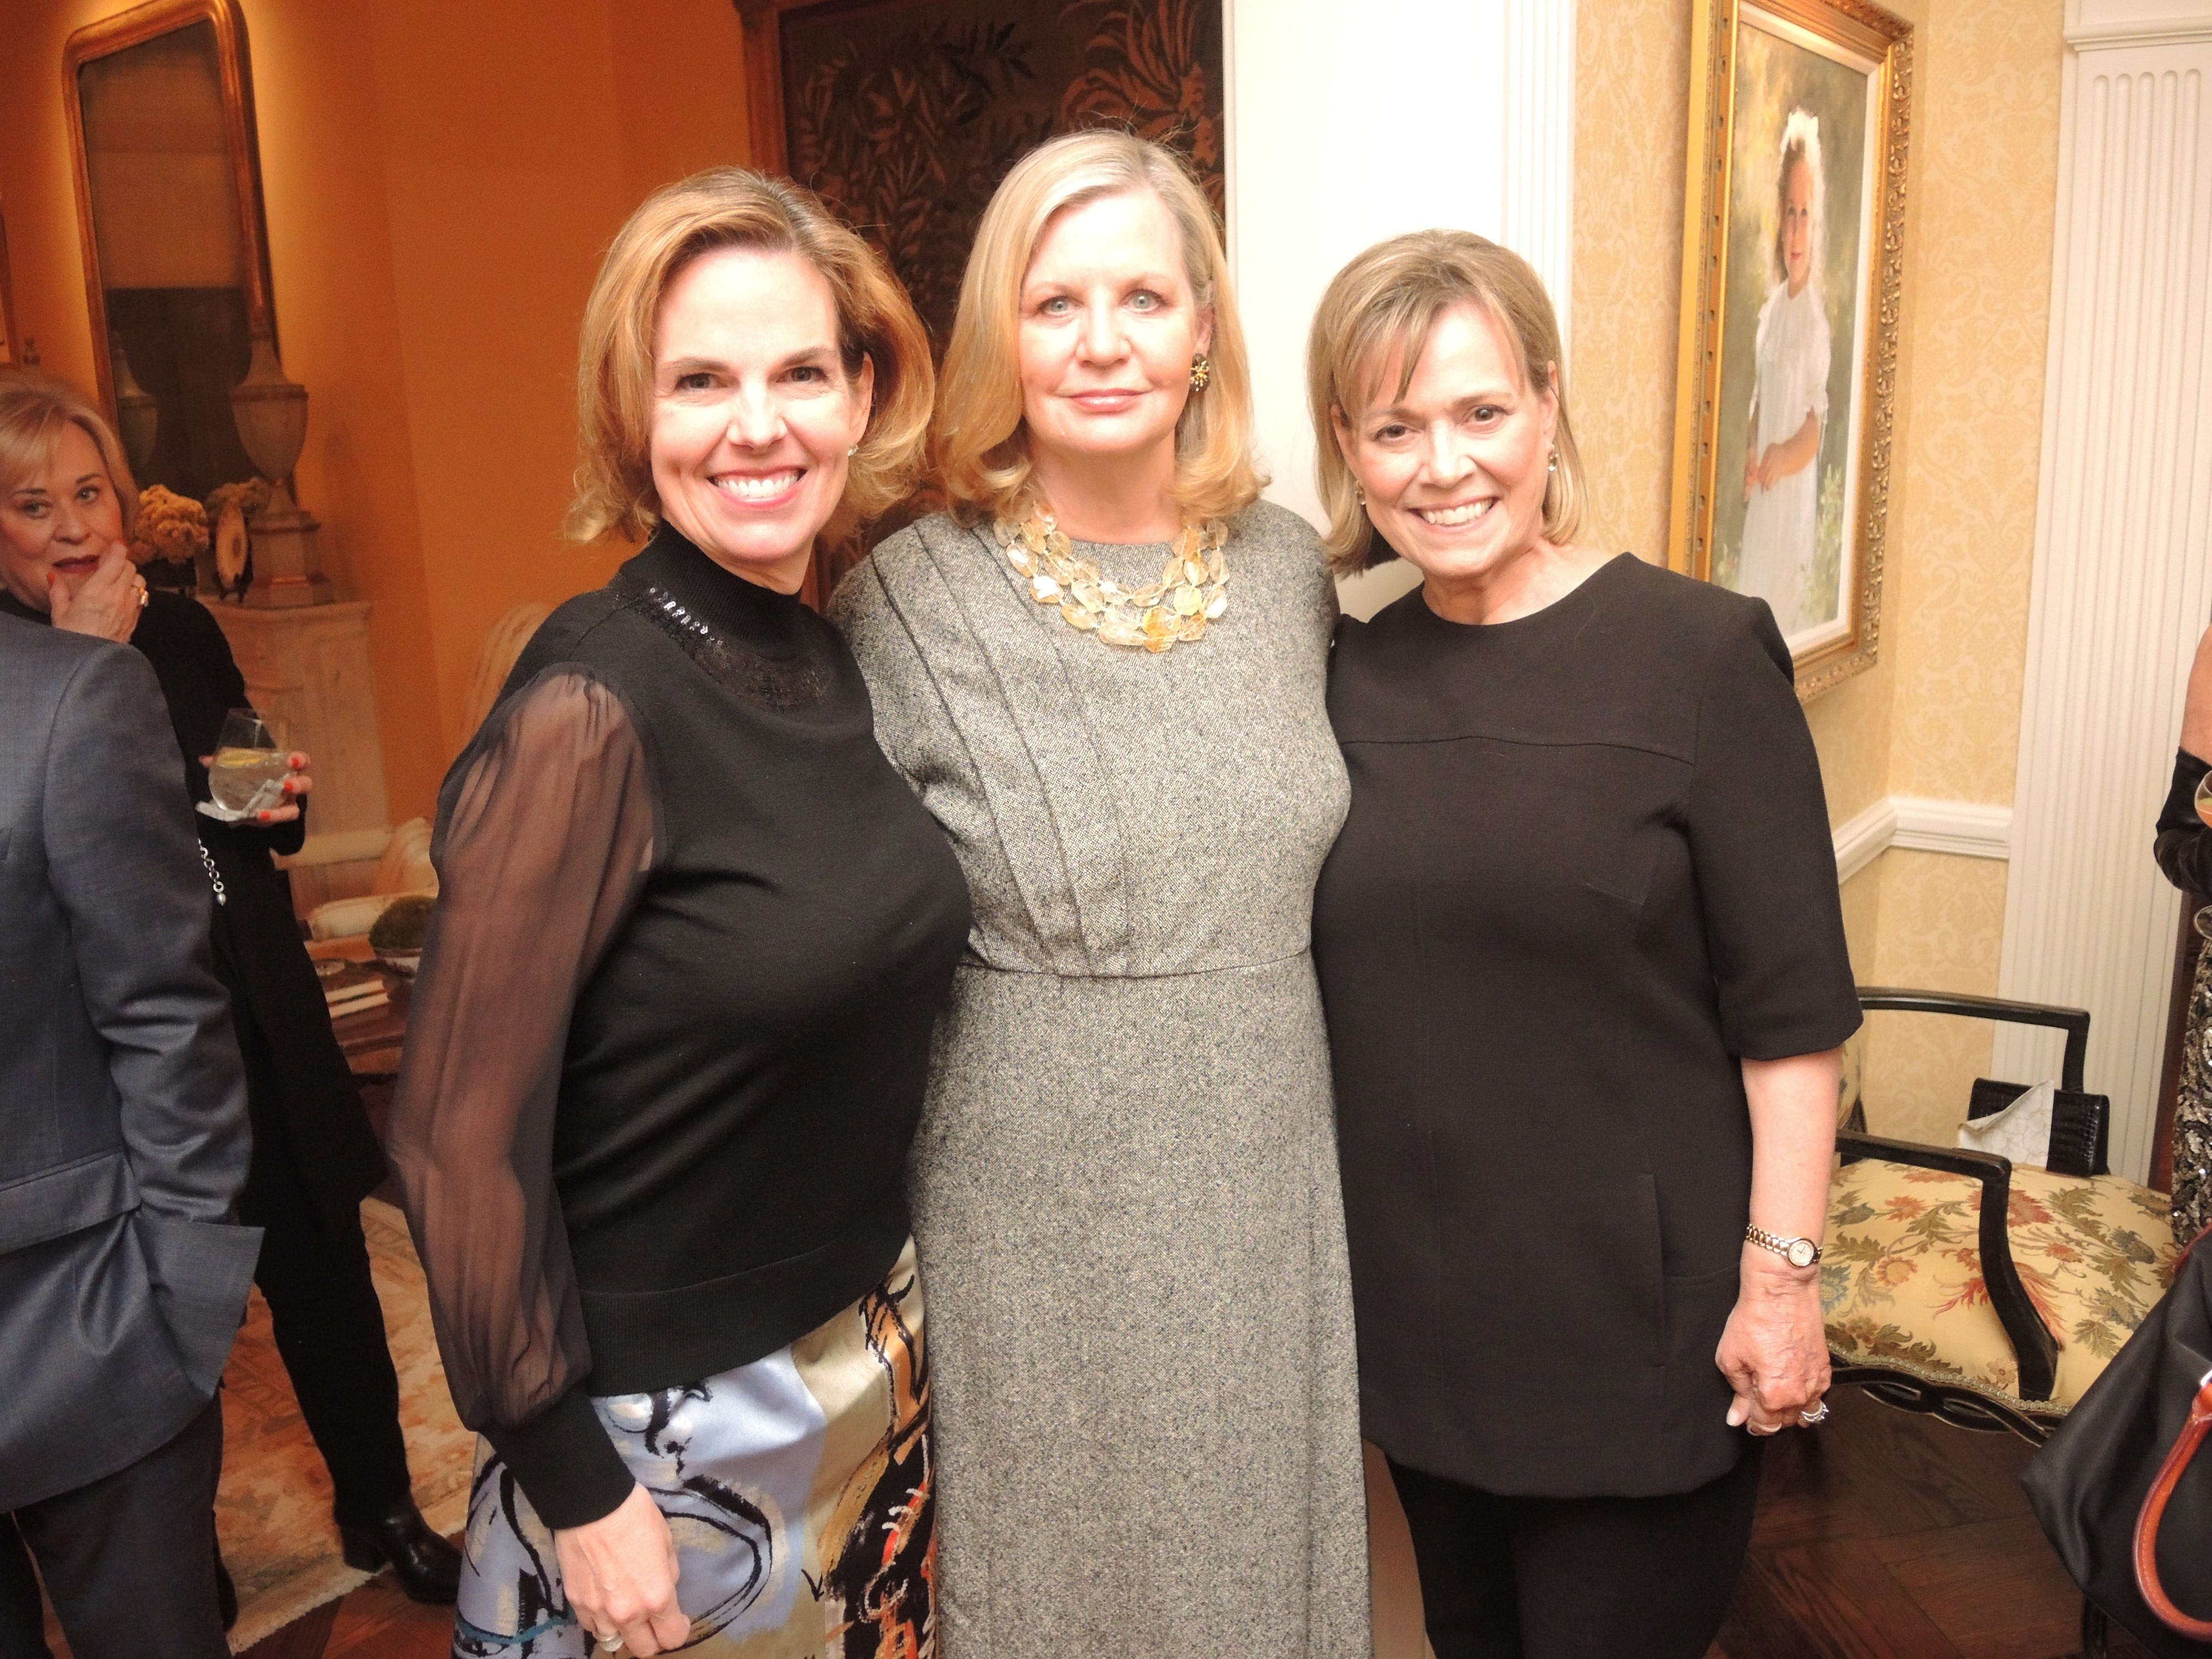 Patti Smallwood, left, Julia Jarman and Elizabeth Akers at the Swan Ball 2019 Unveiling, held at the home of Kathy and Bobby Rolfe.